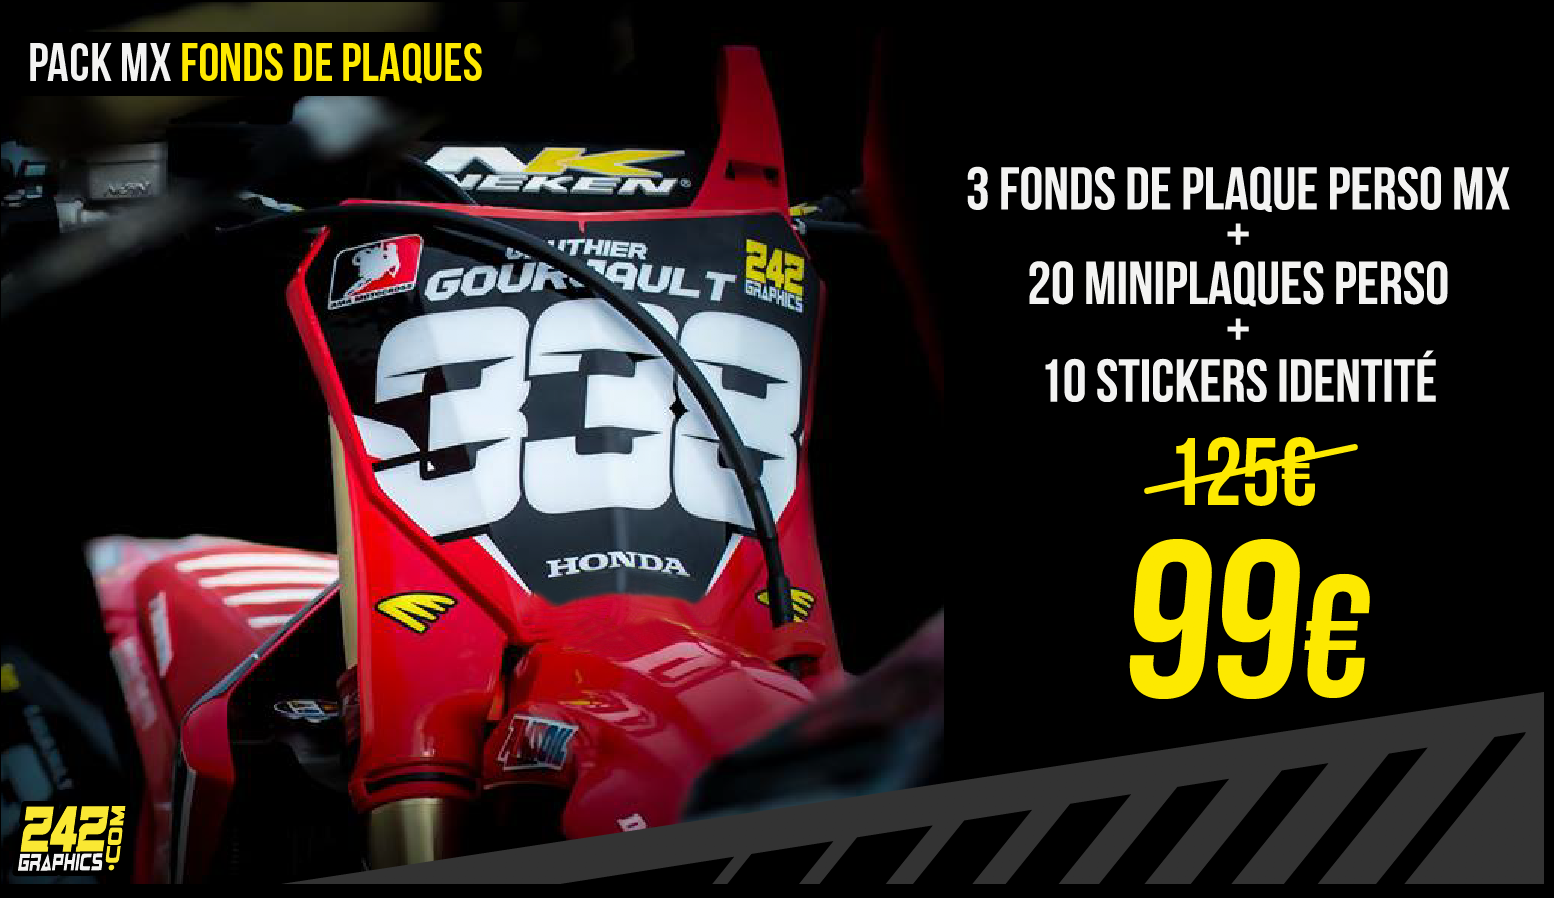 Pack MX fonds de plaque, 99€ au lieu de 125€ !